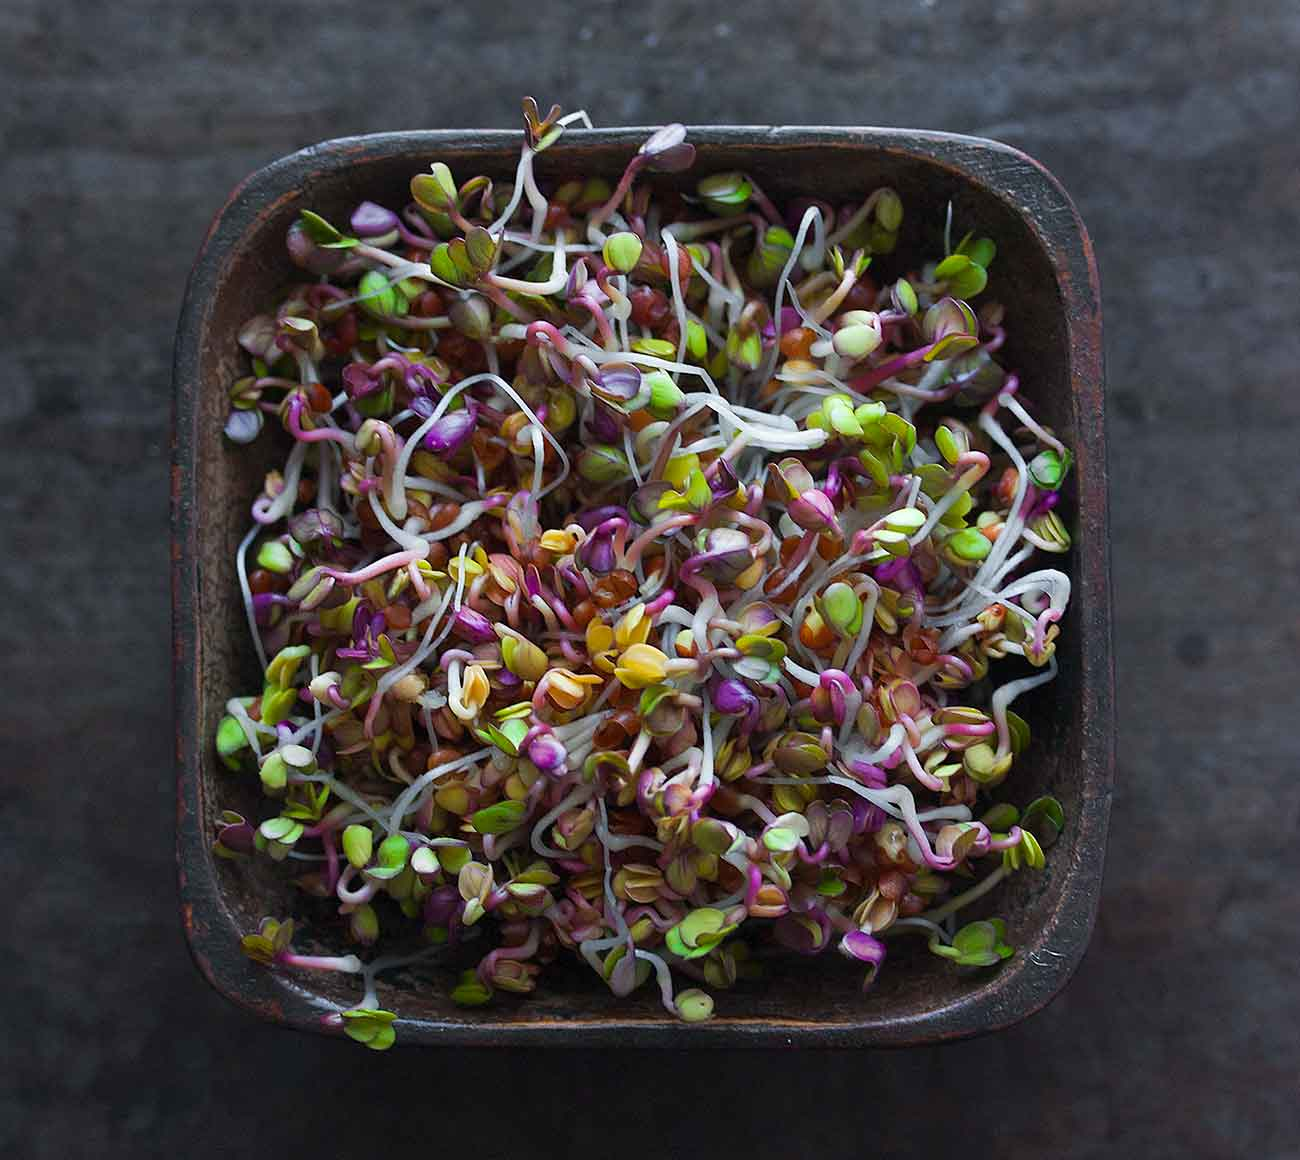 Colorful radish sprouts in a square wooden bowl